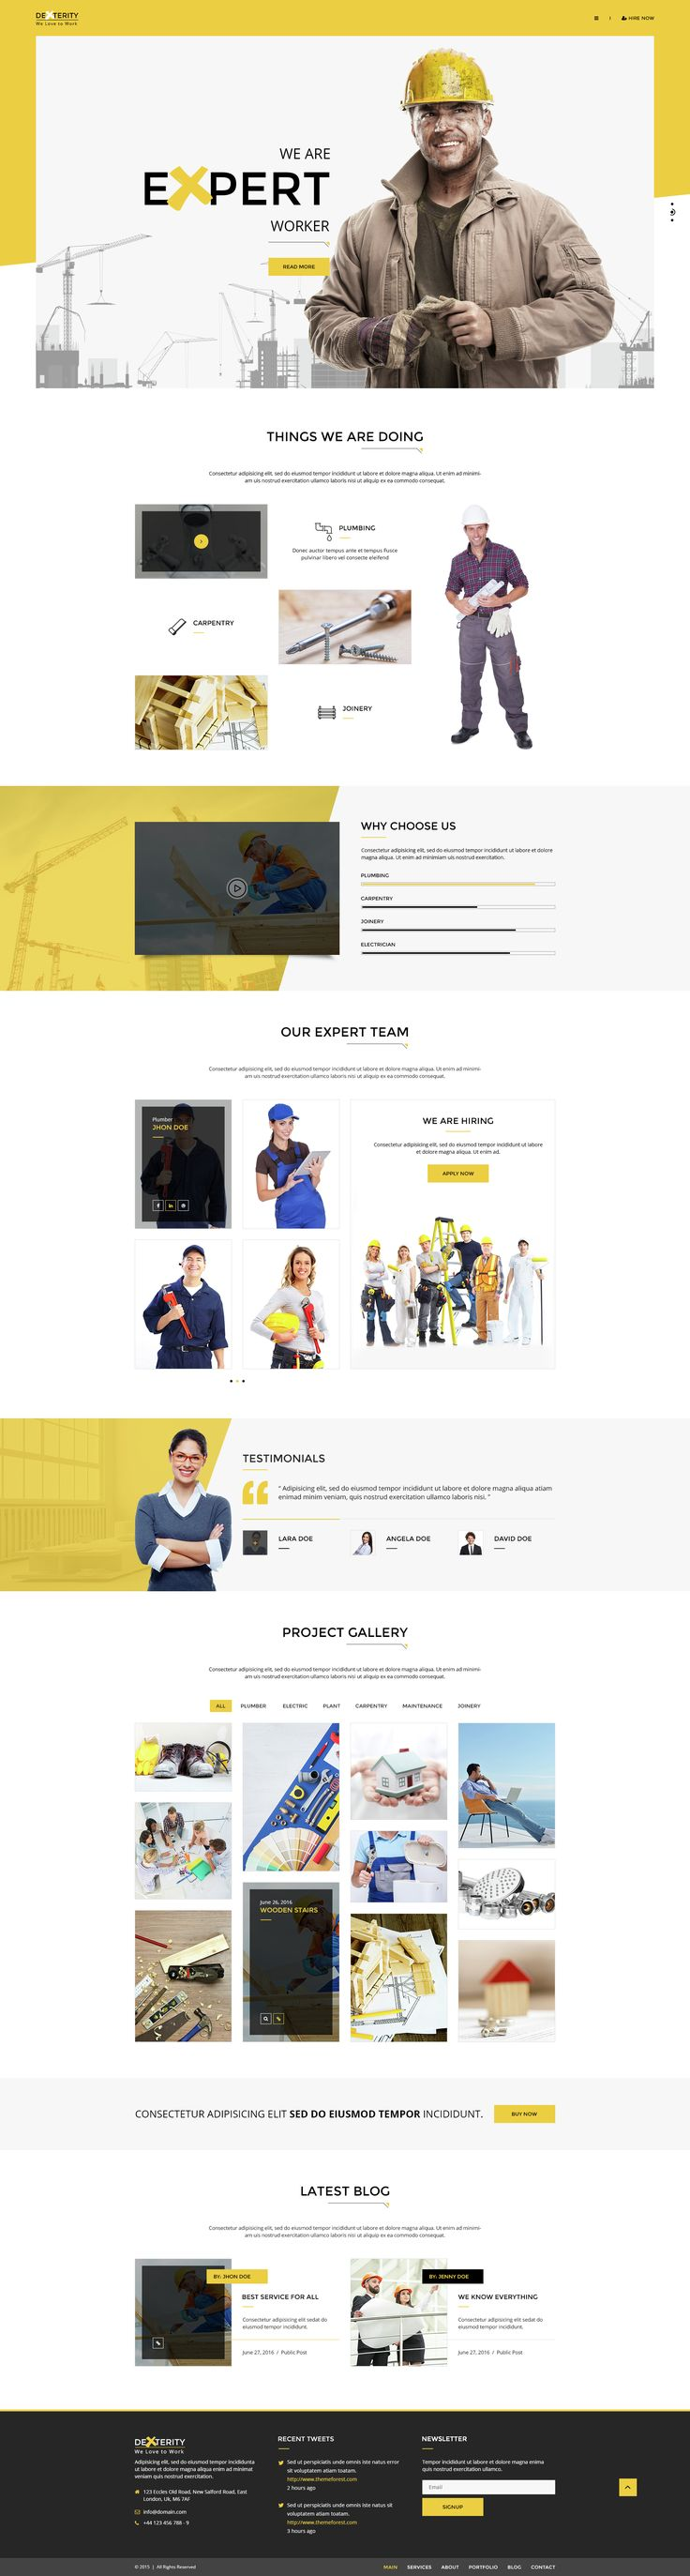 Dexterity   PSD Template For Businesses Related To Handyman, Construction,  Architect And Plumbers. Page DesignDesign LayoutsWeb ...